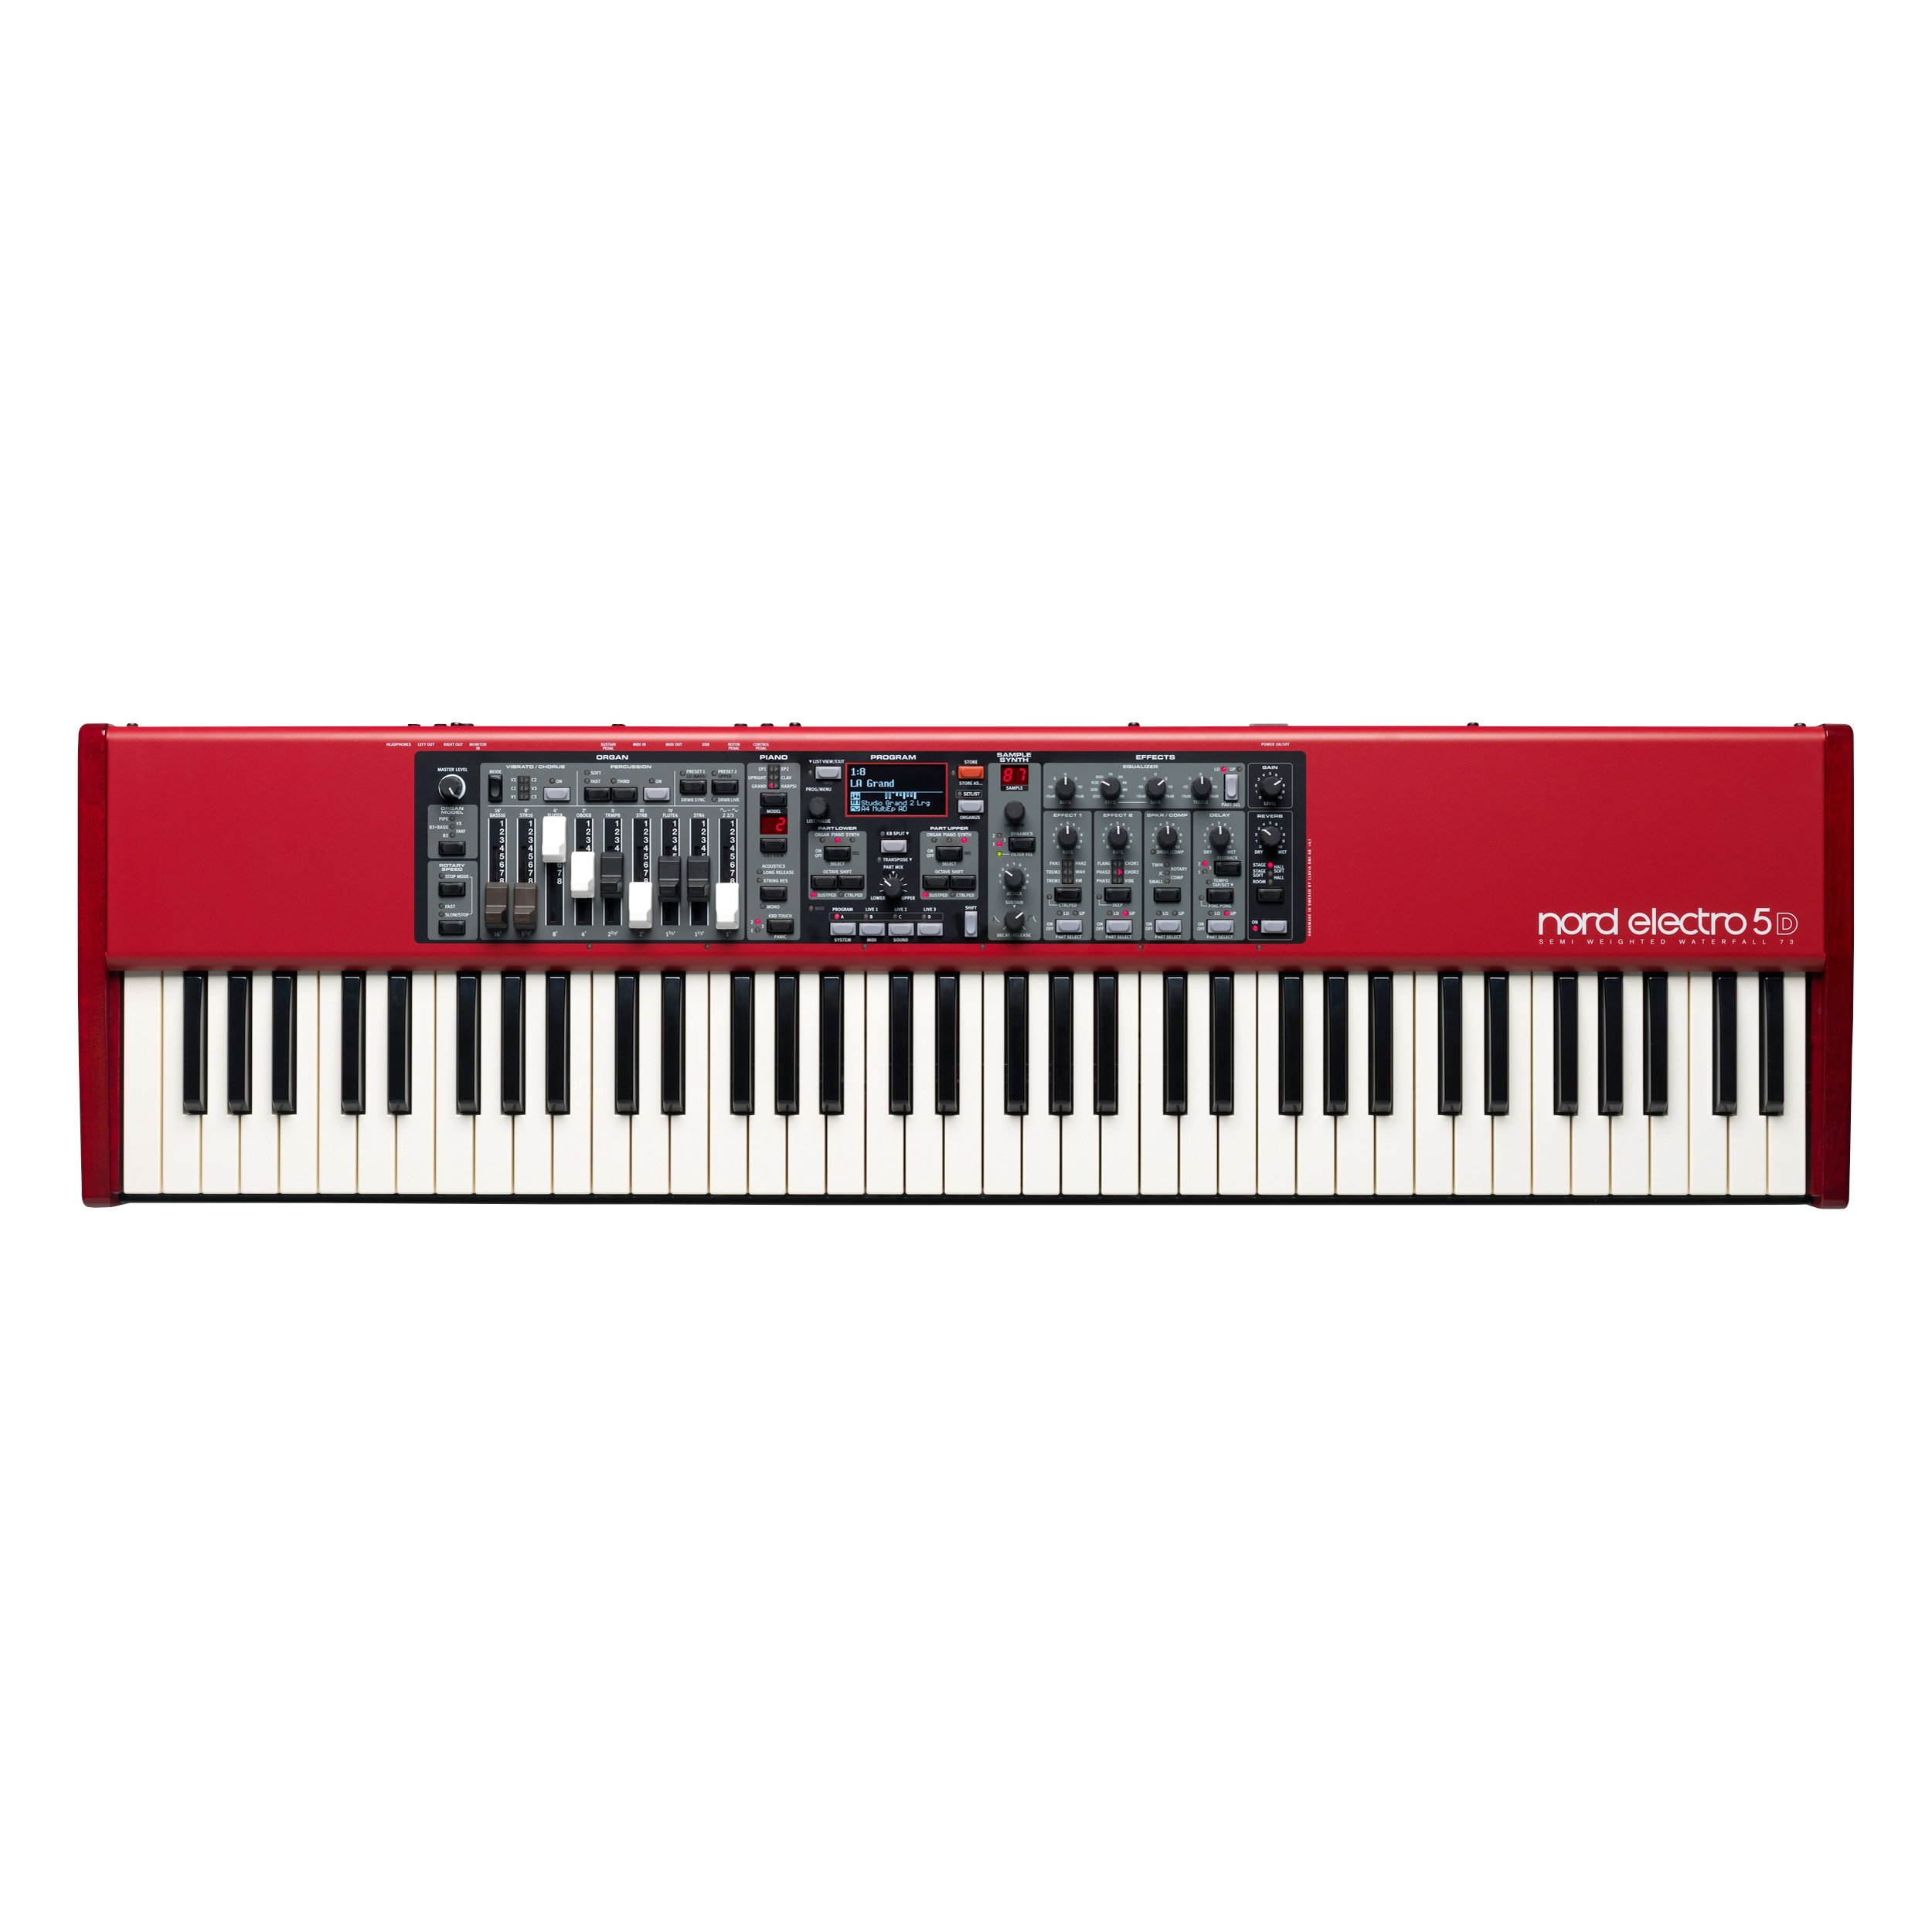 Nord Electro 5D 73 Velocity Sensitive 73-Key Semi-Weighted Waterfall Keyboard (NELECTRO5D-73) by Nord